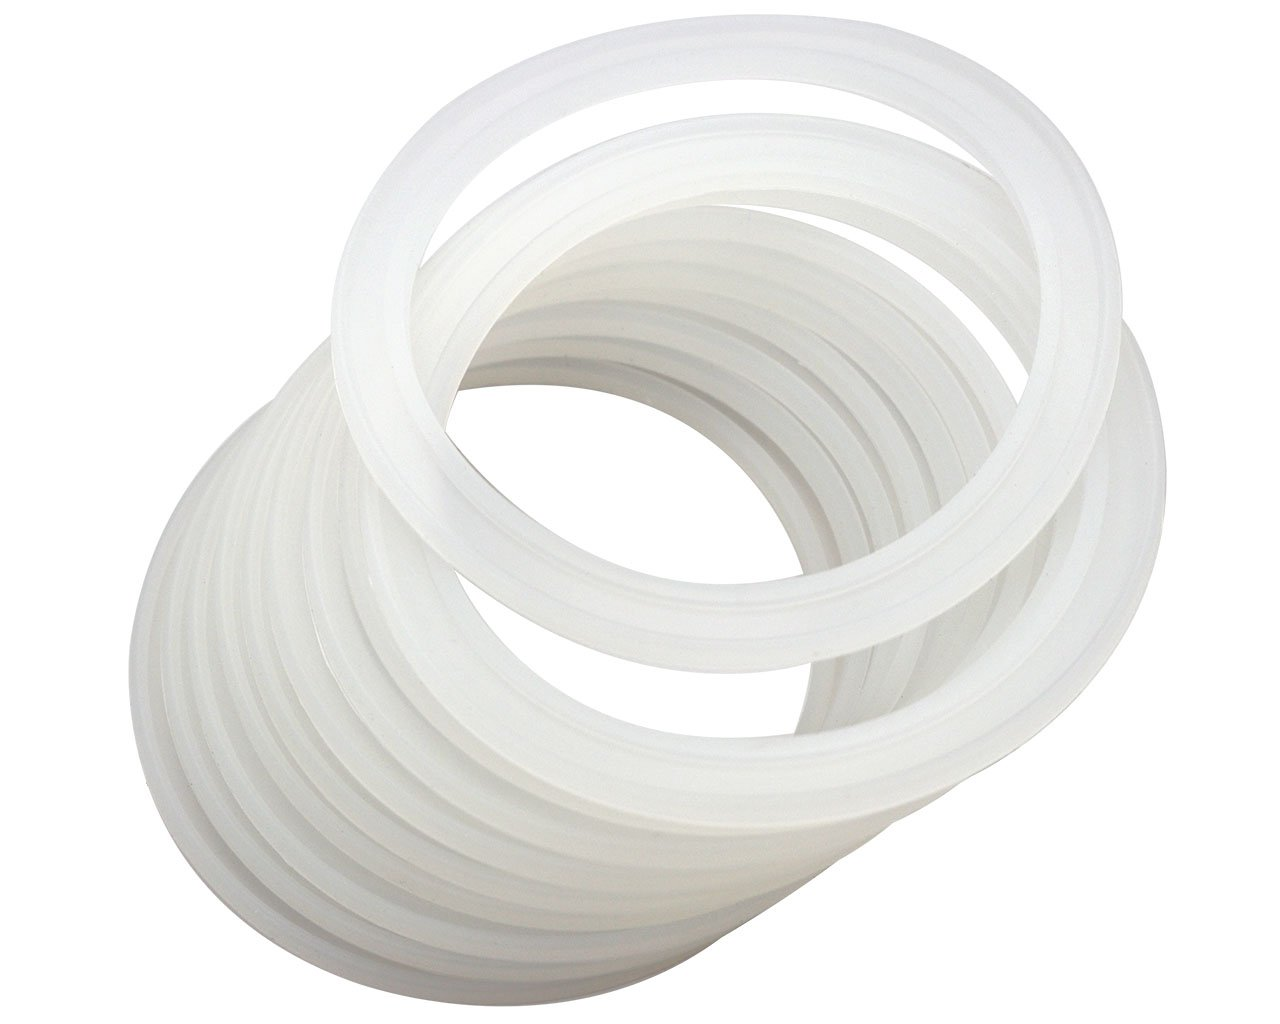 Platinum Silicone Sealing Rings Gaskets for Leak Proof Mason Jar Lids (10 Pack, Wide Mouth) by Mason Jar Lifestyle